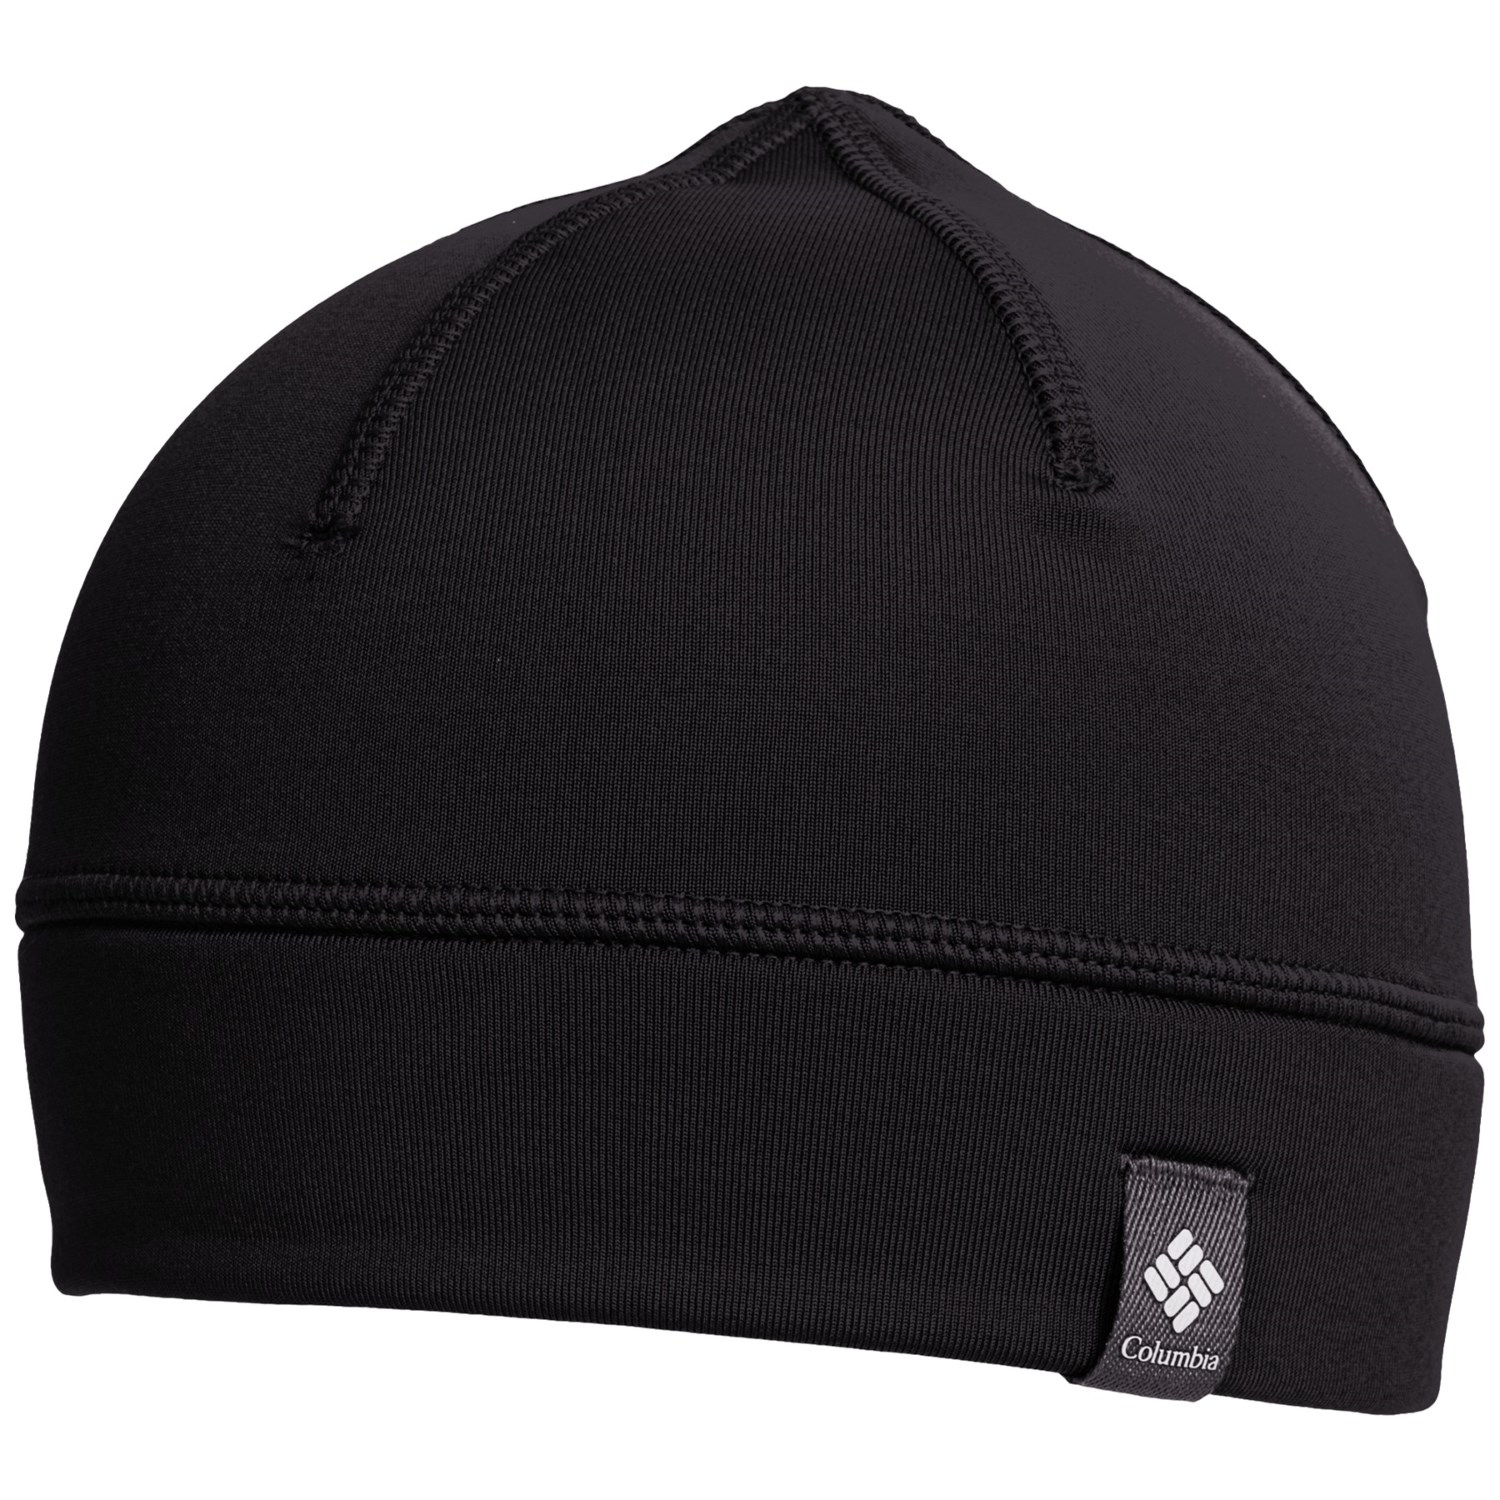 13a98c5098aa5 Columbia Sportswear Mad Run Beanie Hat (For Men and Women) 6864Y on ...